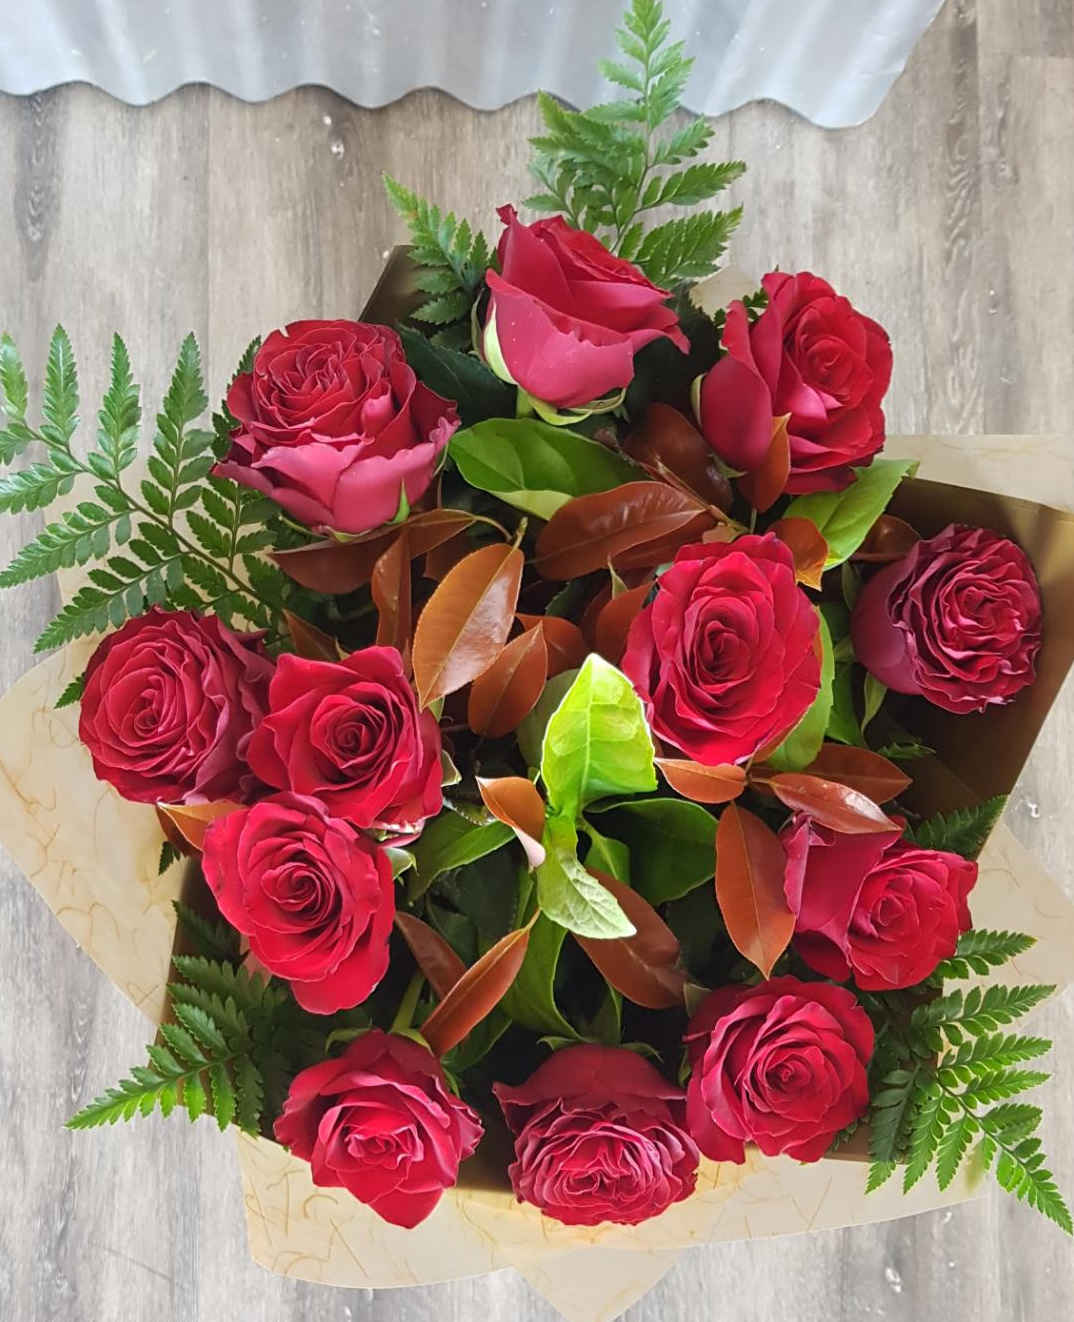 Twelve beautiful red roses with greenery wrapped in a bouquet.